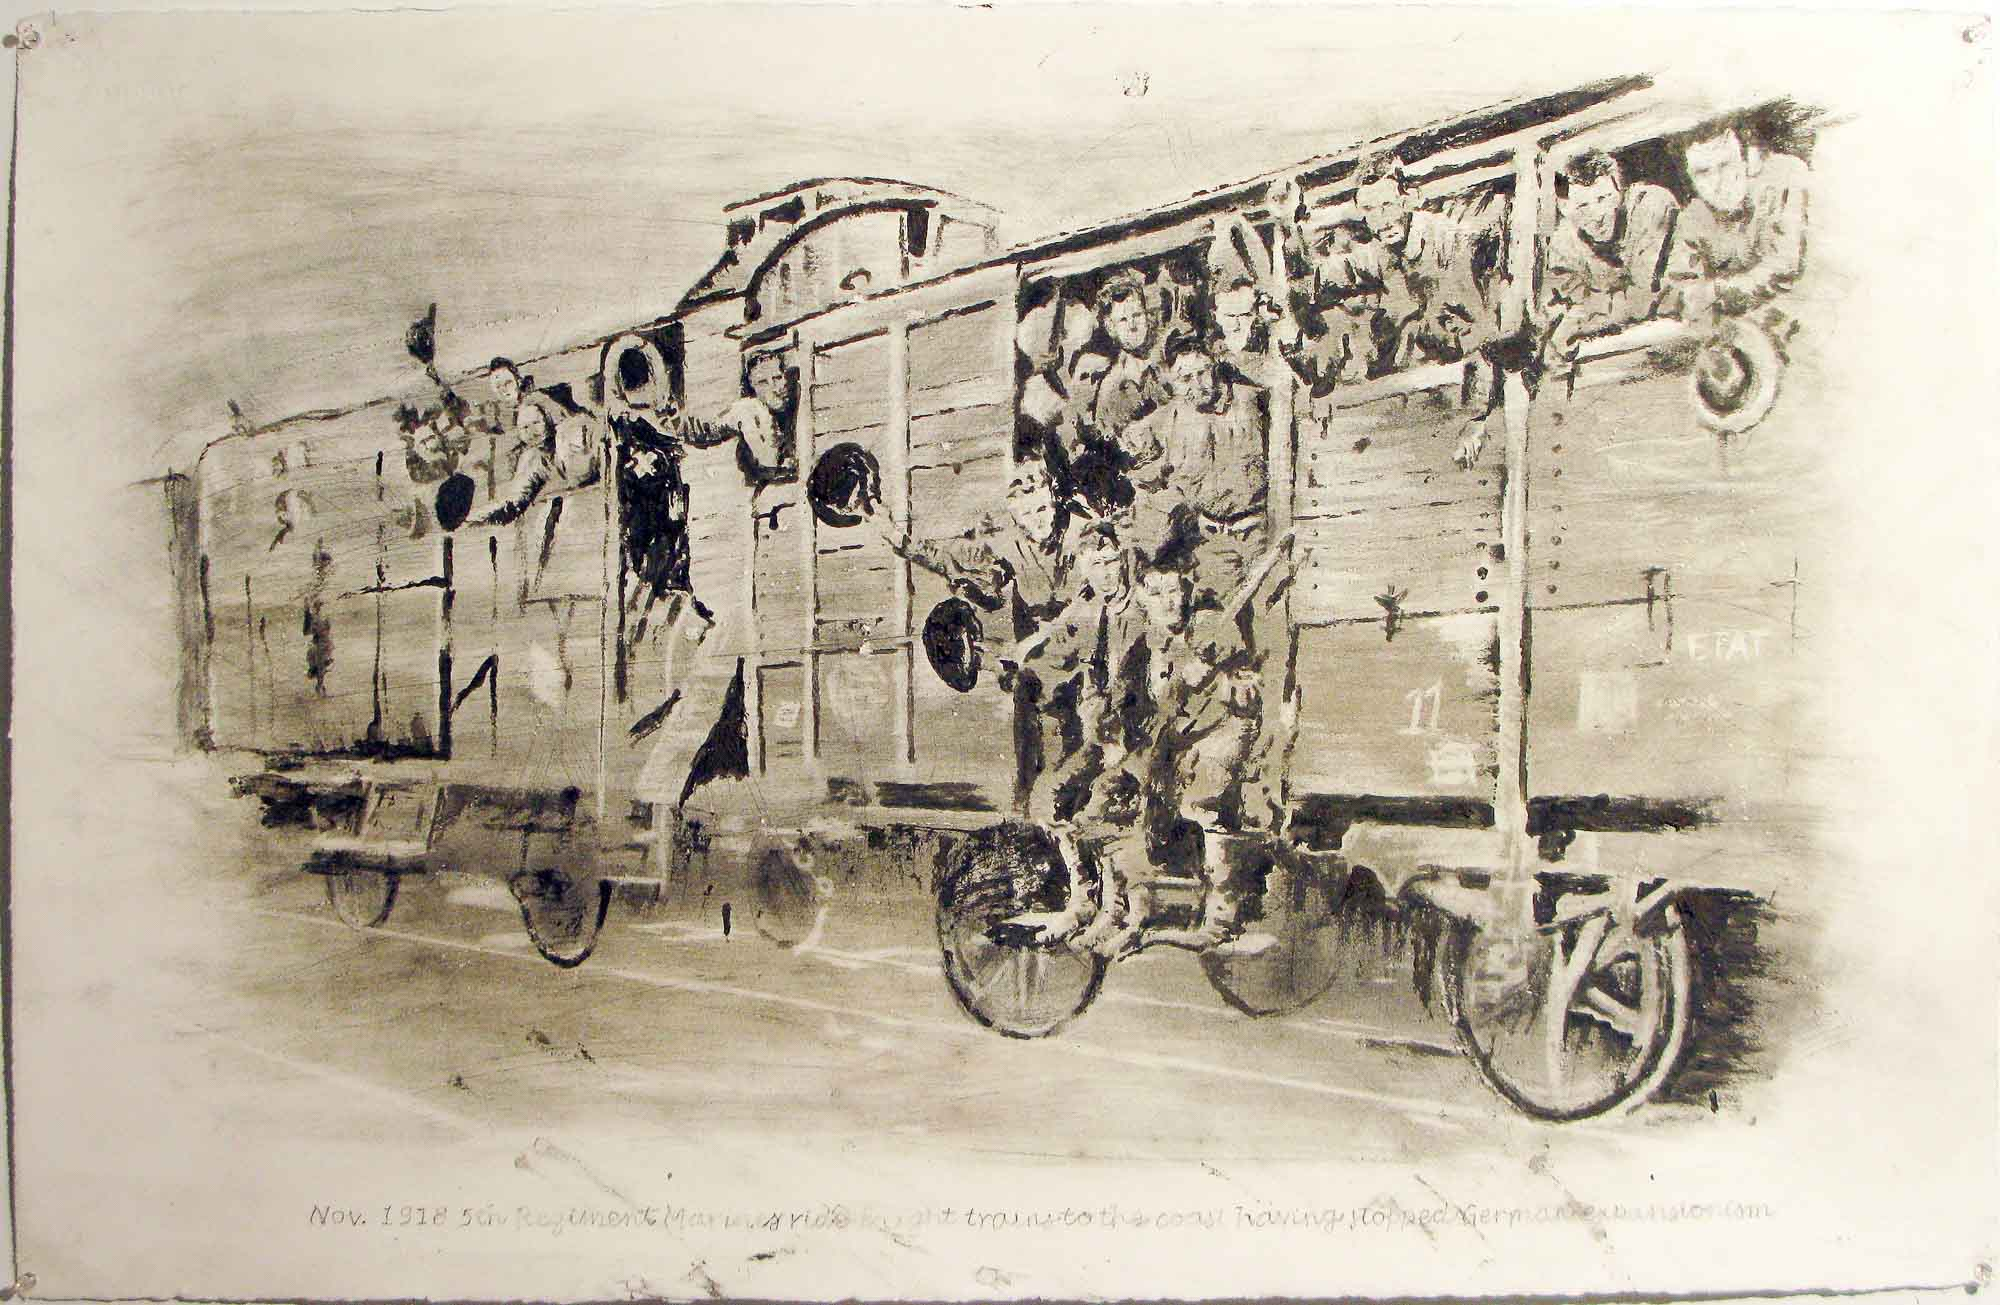 Nov. 1918 5th Regiment Marines Ride Freight Trains to the Coast Having Stoped German Expansion